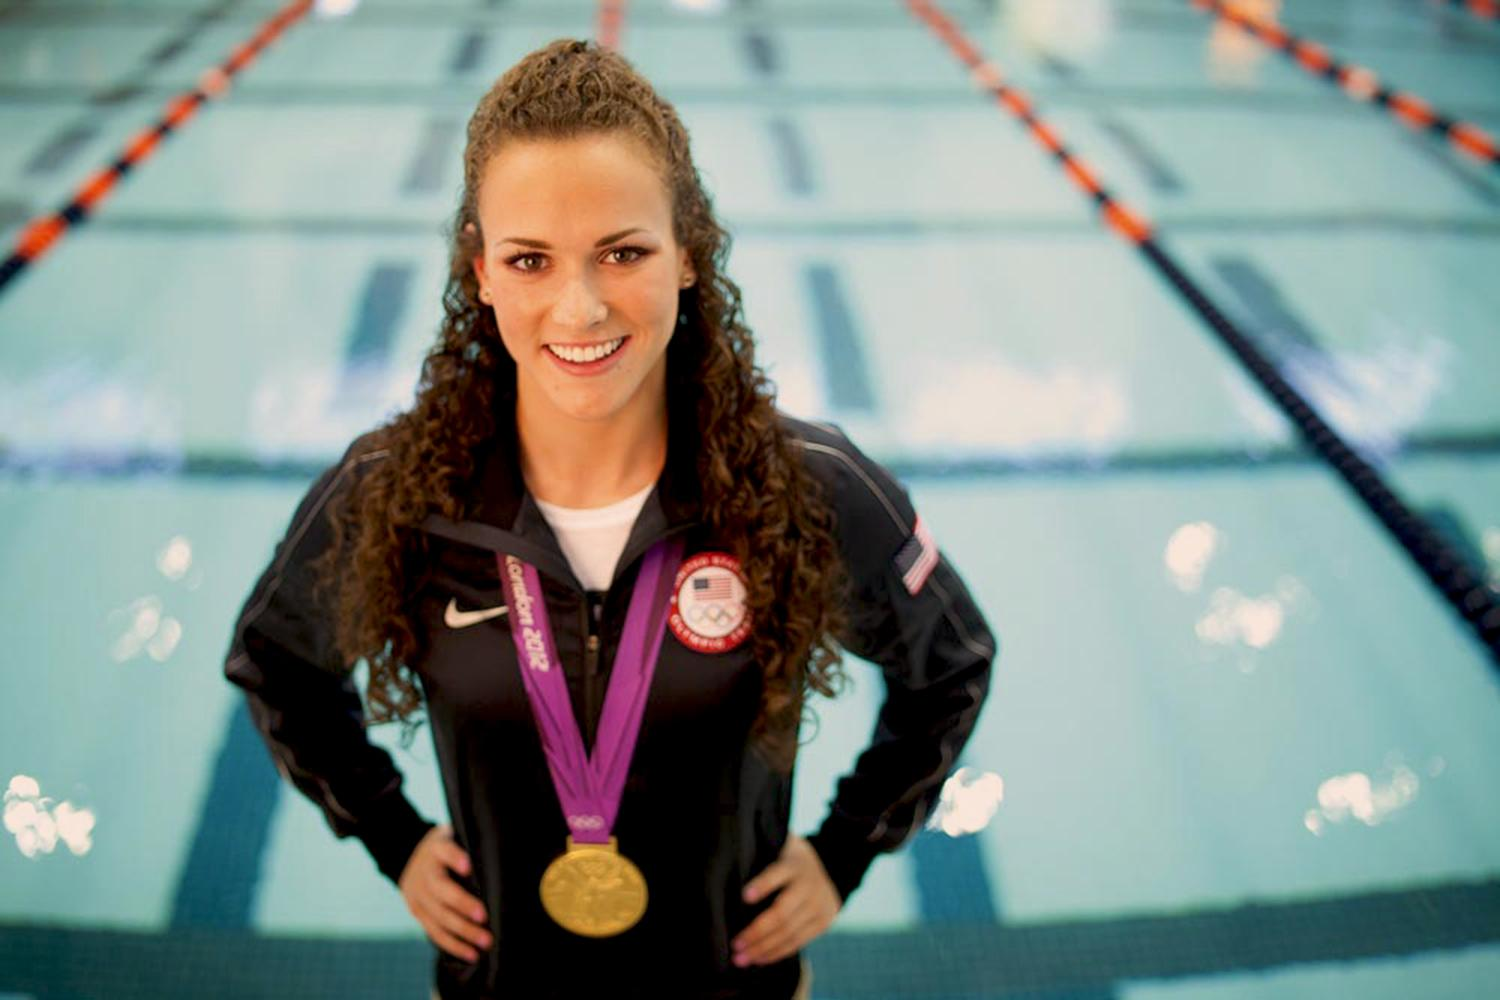 "Swimmer Lauren Perdue won gold and silver medals in London, but said she downplays her athletic feats in job interviews. ""That's not why I want to get hired,"" she said."